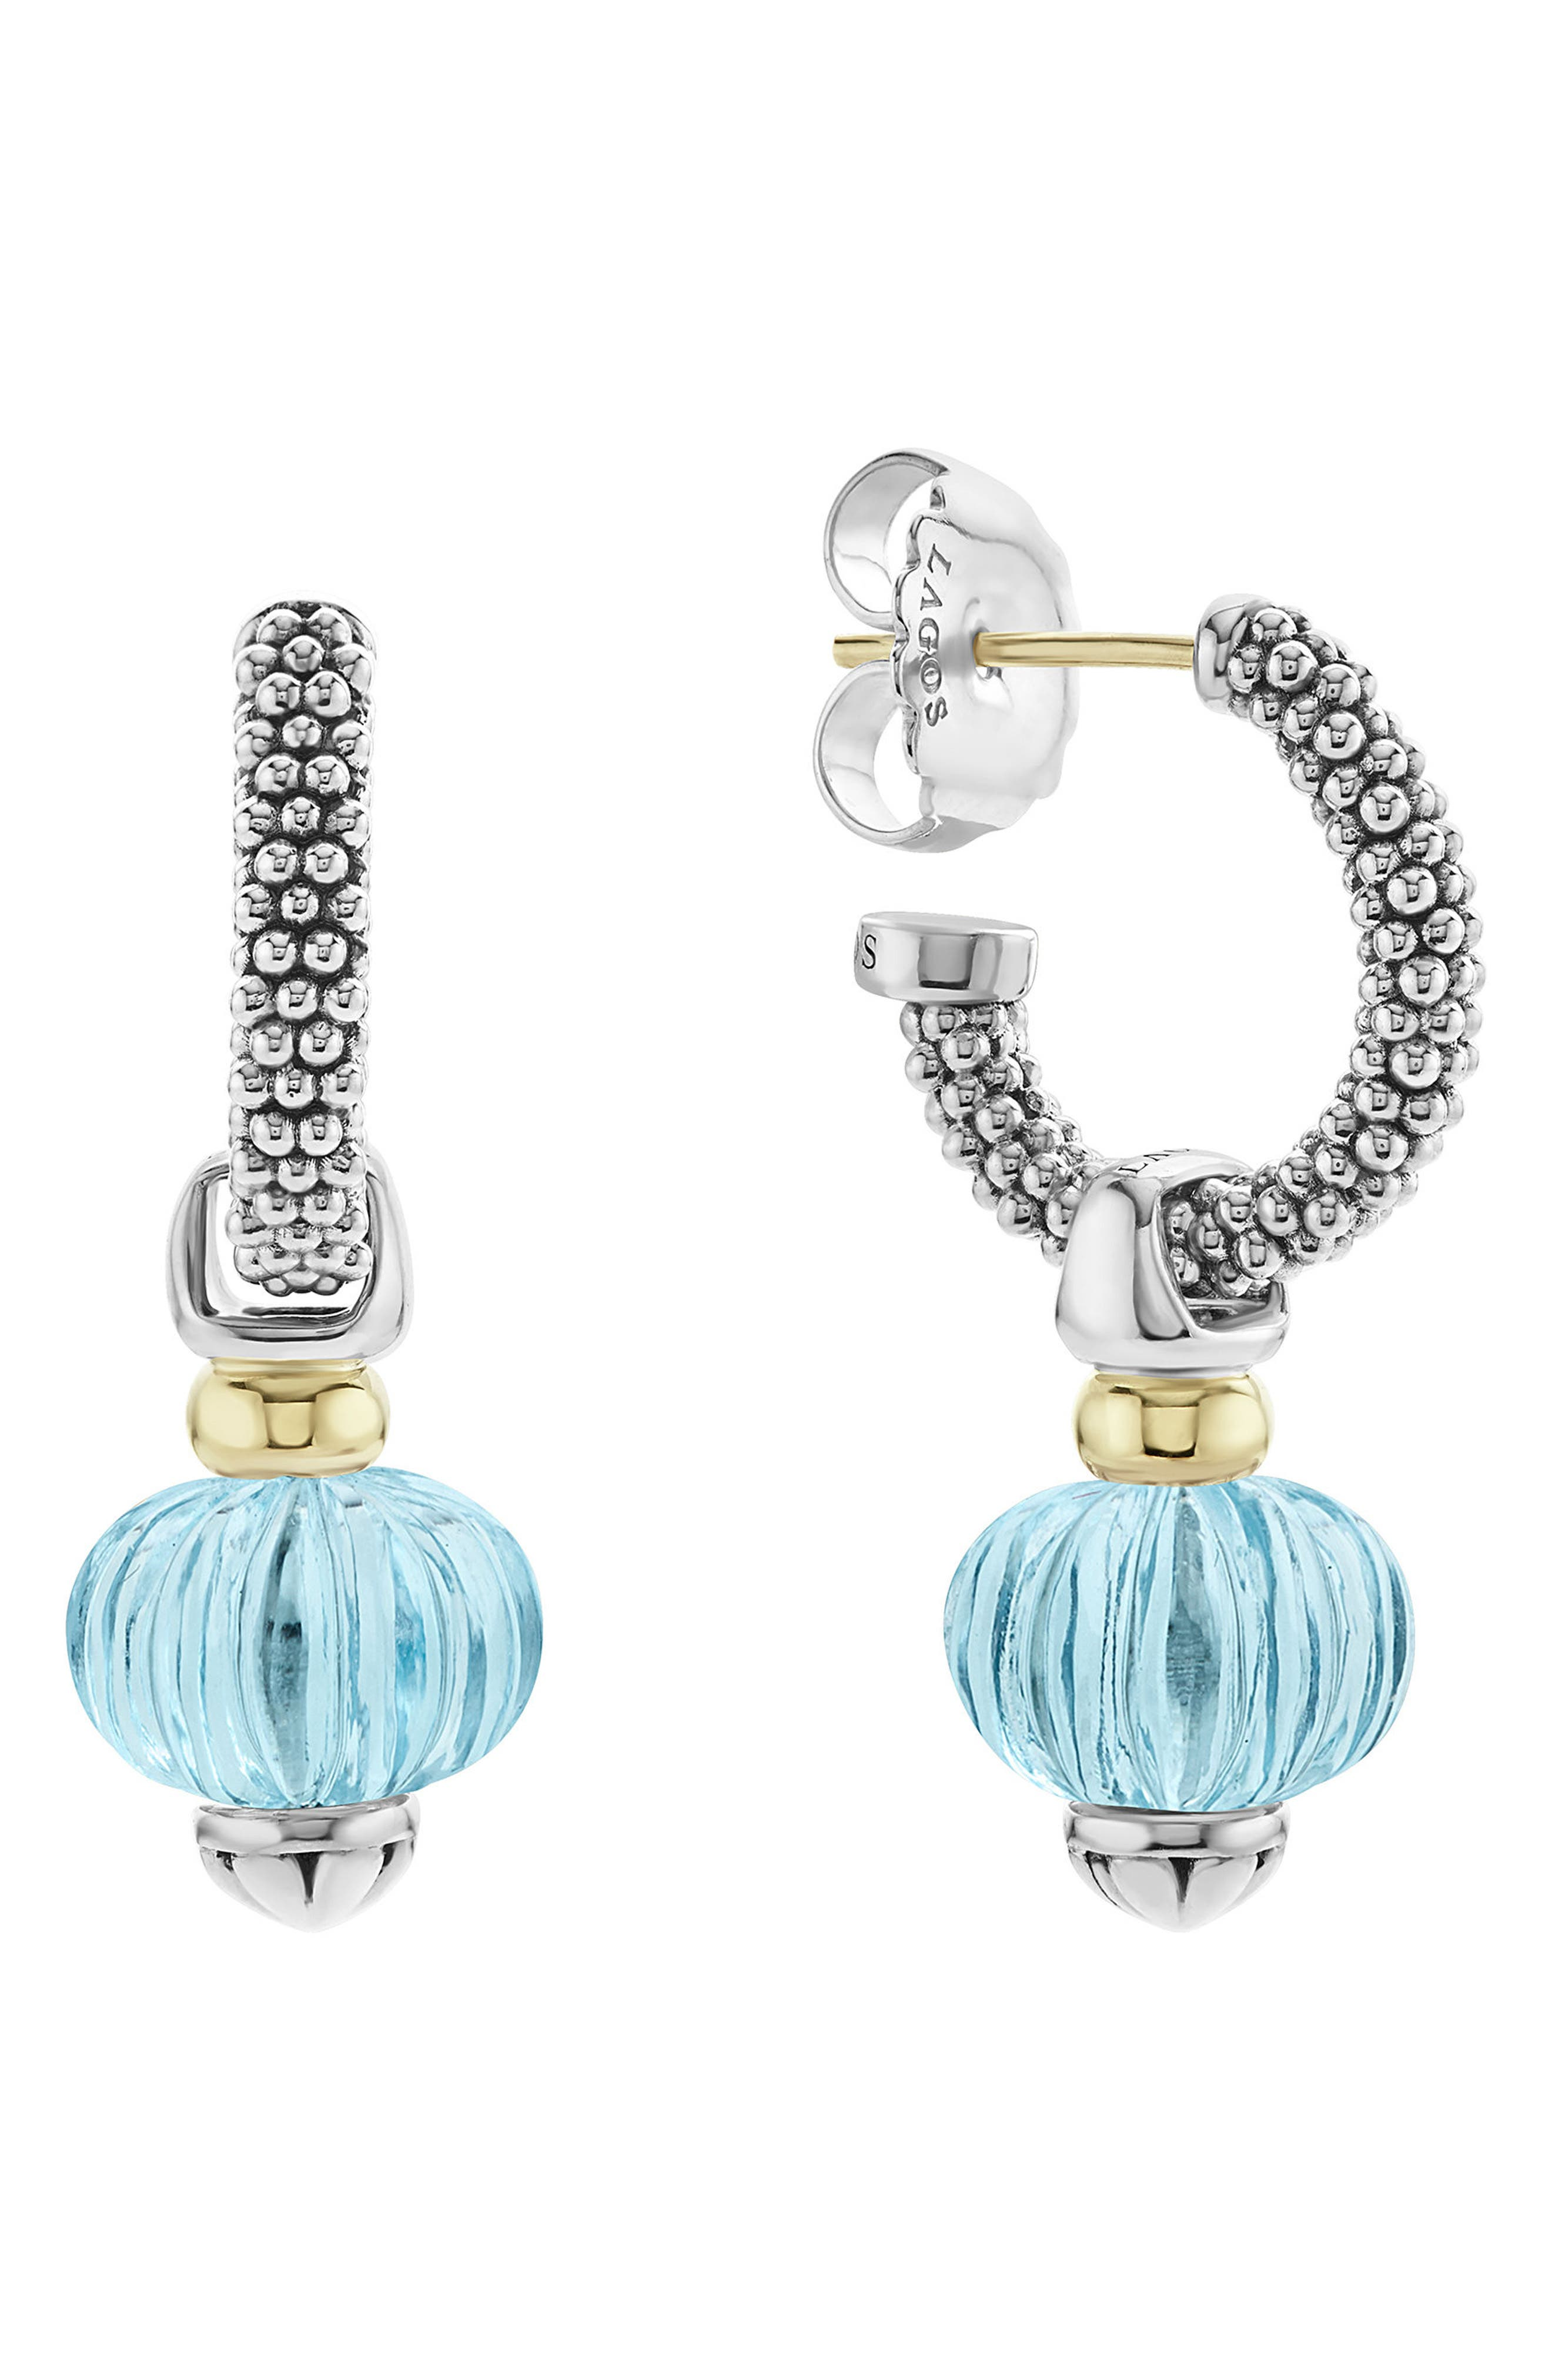 LAGOS Caviar Forever Melon Bead Charm Earrings